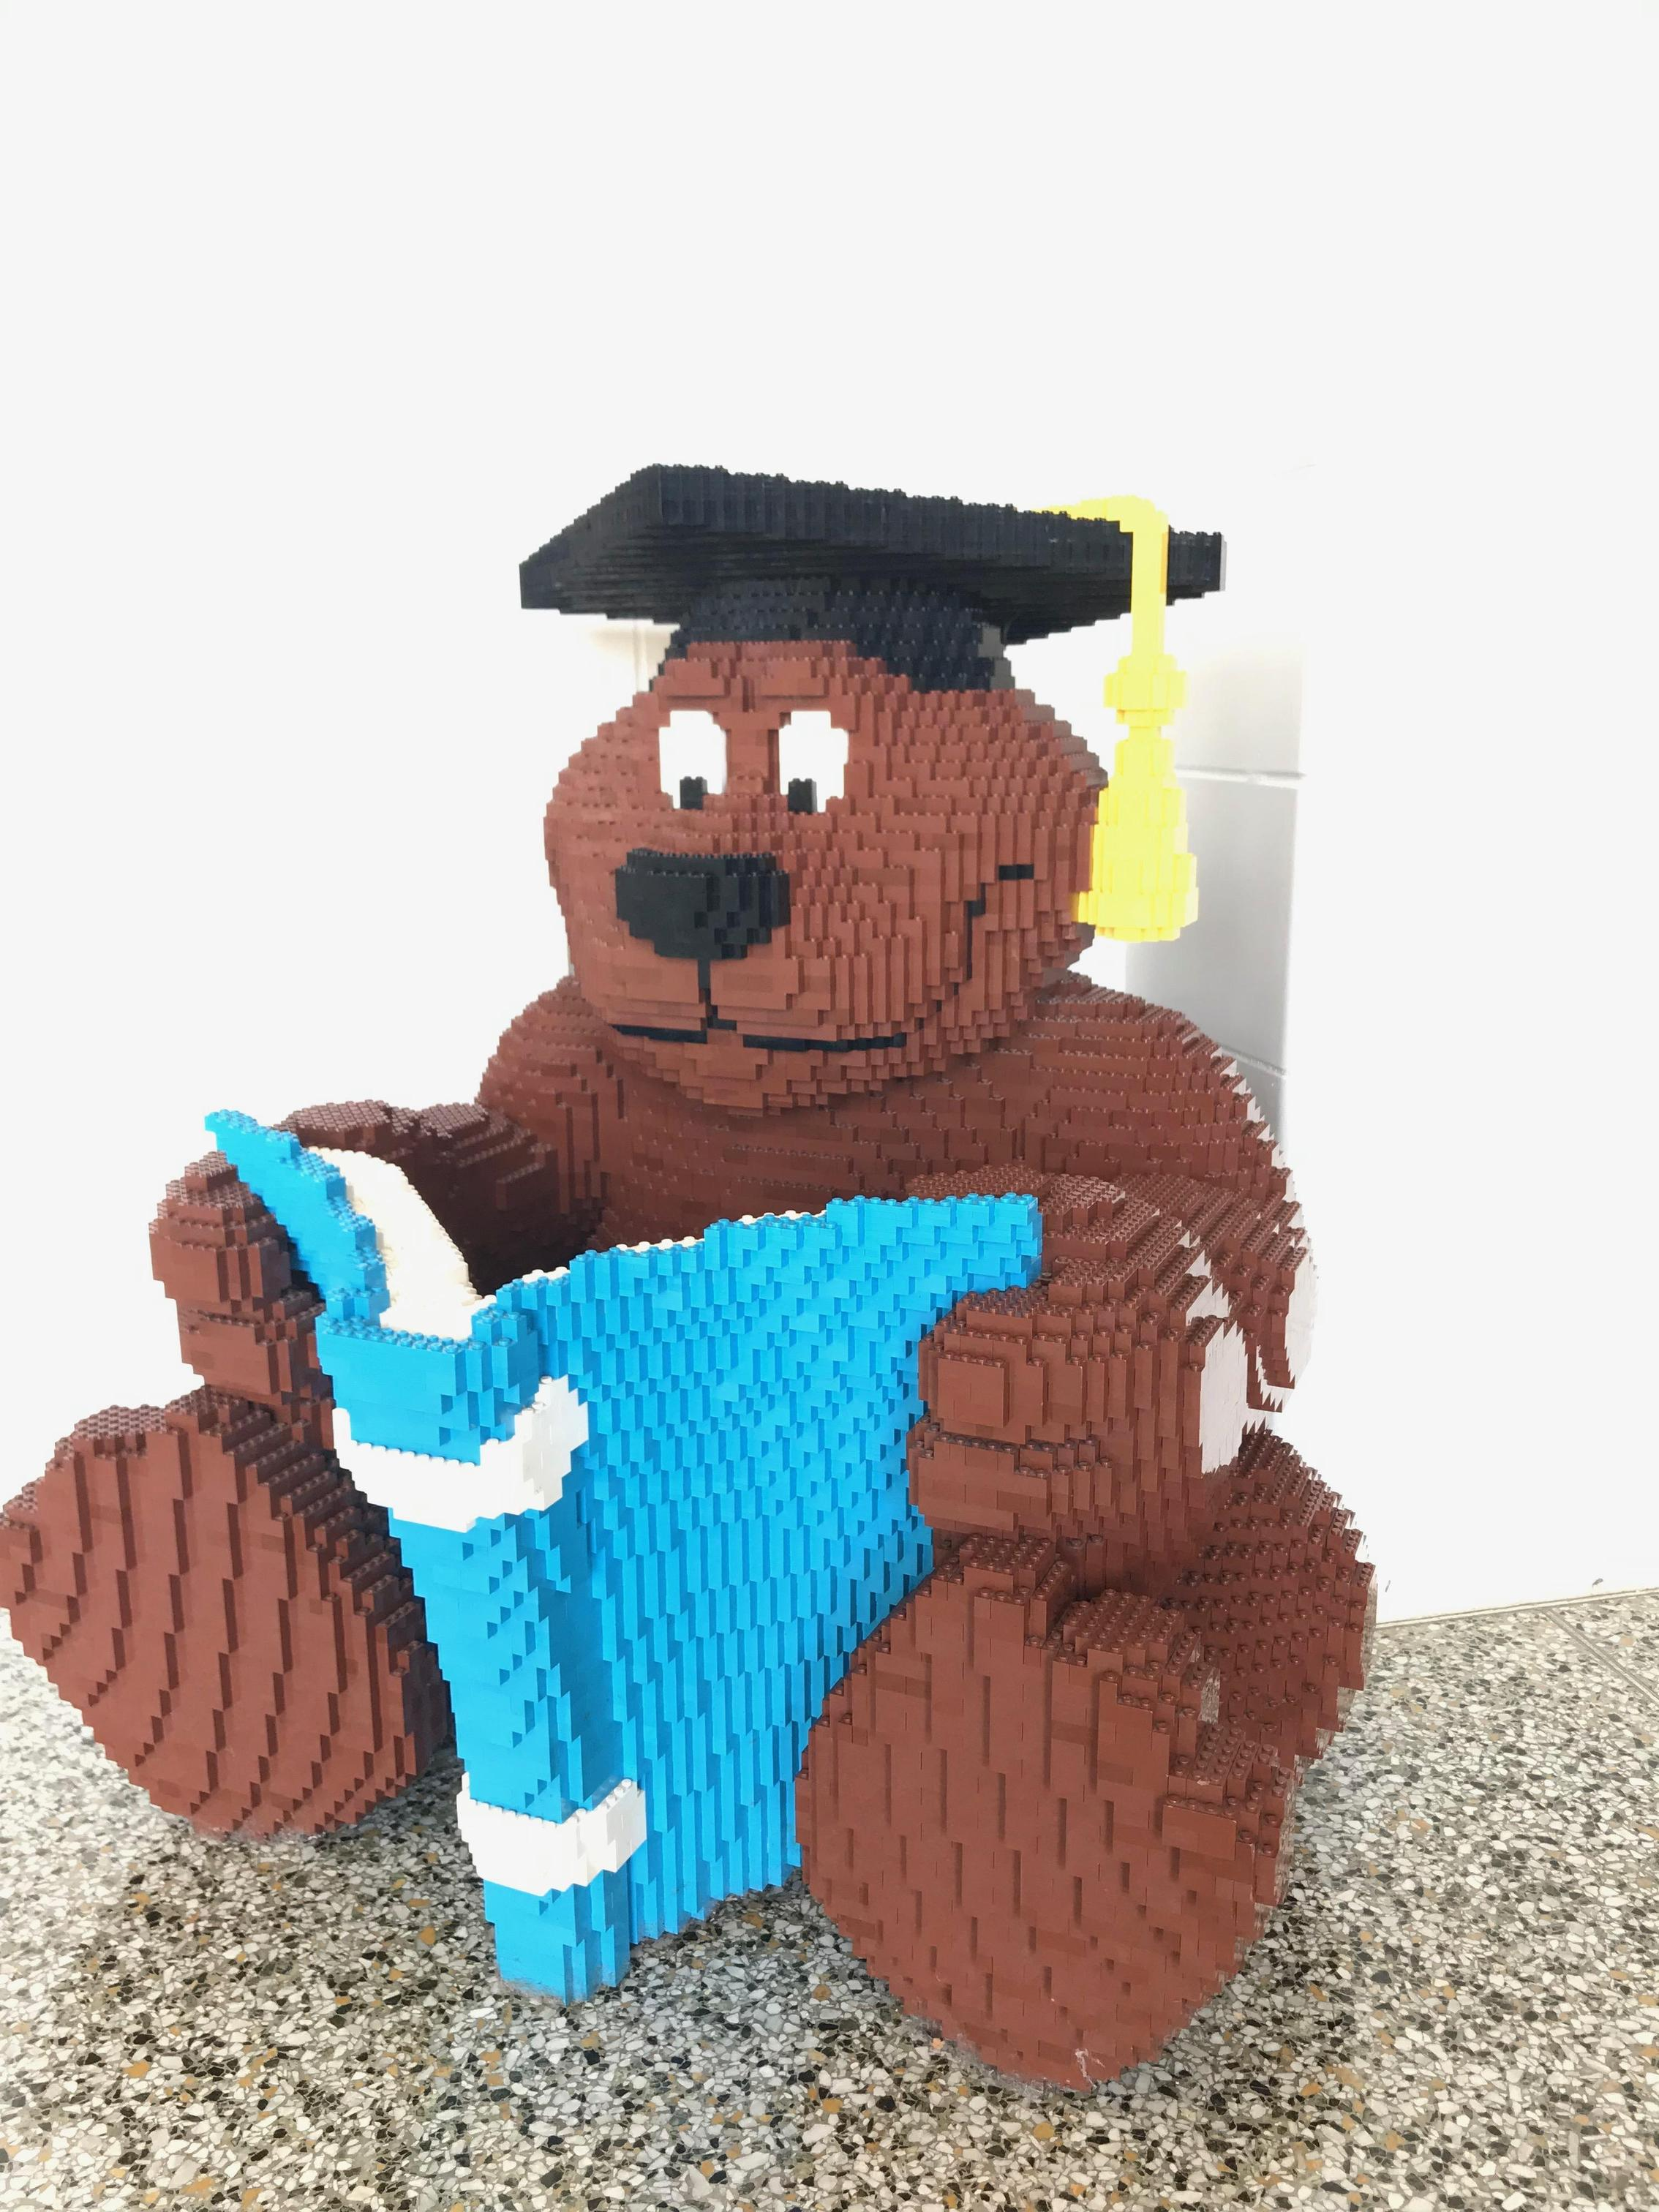 Bear made of LEGO